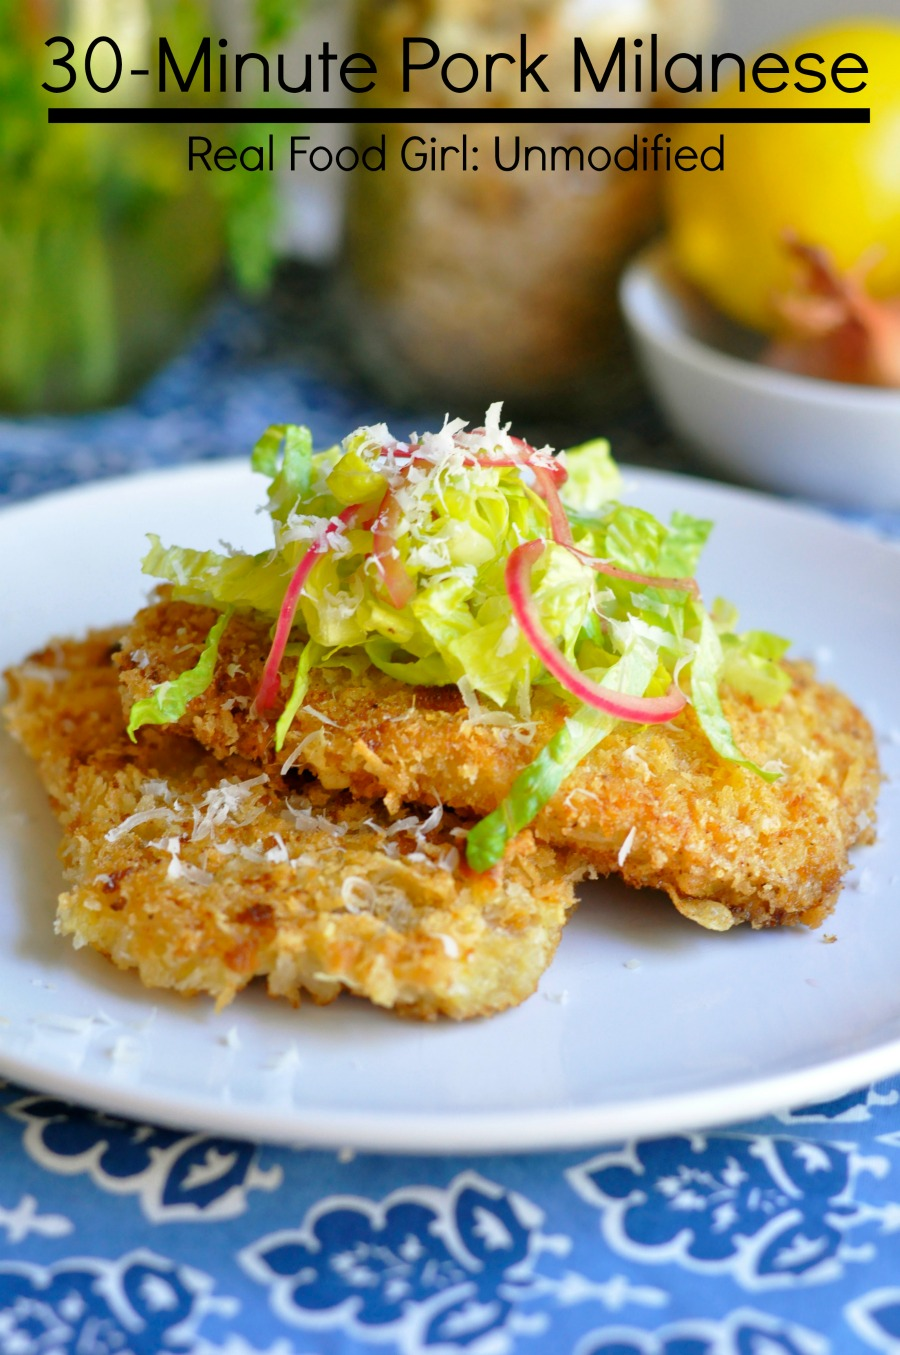 30-Minute Mondays- Pork Milanese| Real Food Girl: Unmodified. Pan fried porky goodness!